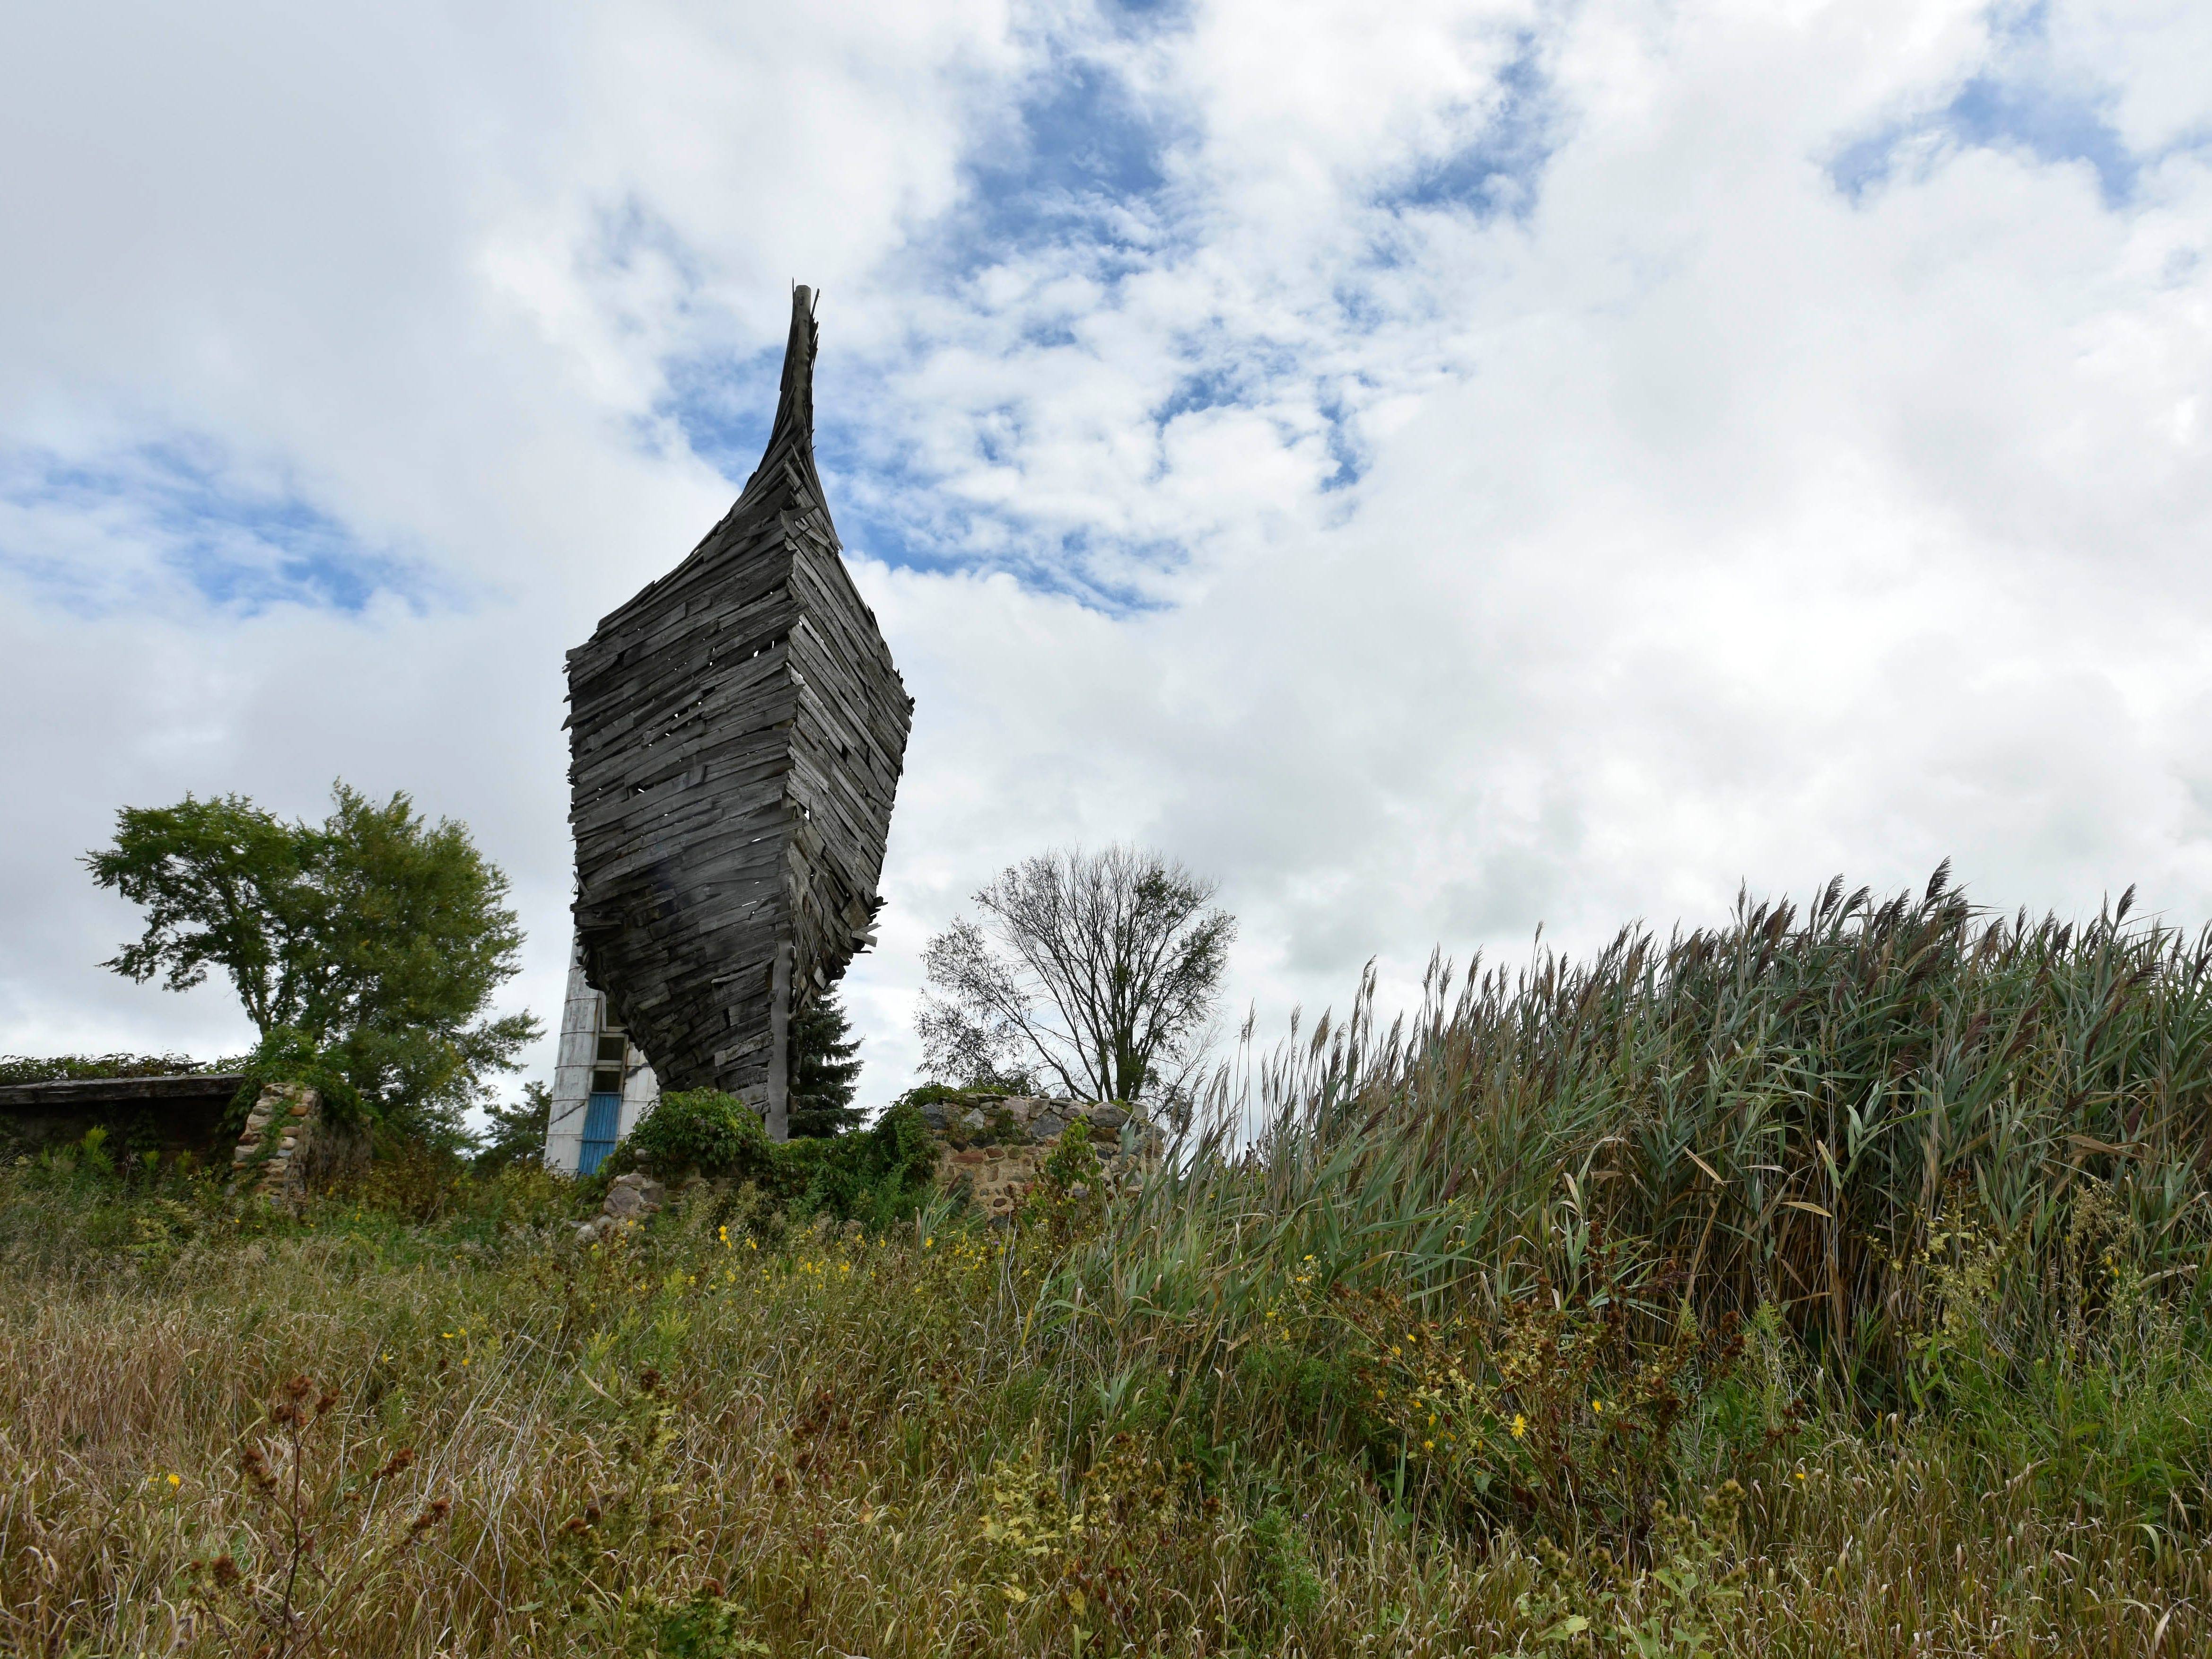 This is the Celestrial Ship of the North, aka the Emergency Ark, aka the Boatbarn by Scott Hocking of Detroit, near Oak Beach and Fehner Road. According to Hocking's website, the barn is made entirely from the beams and boards of a collapsing 1890s barn that stood in its place.